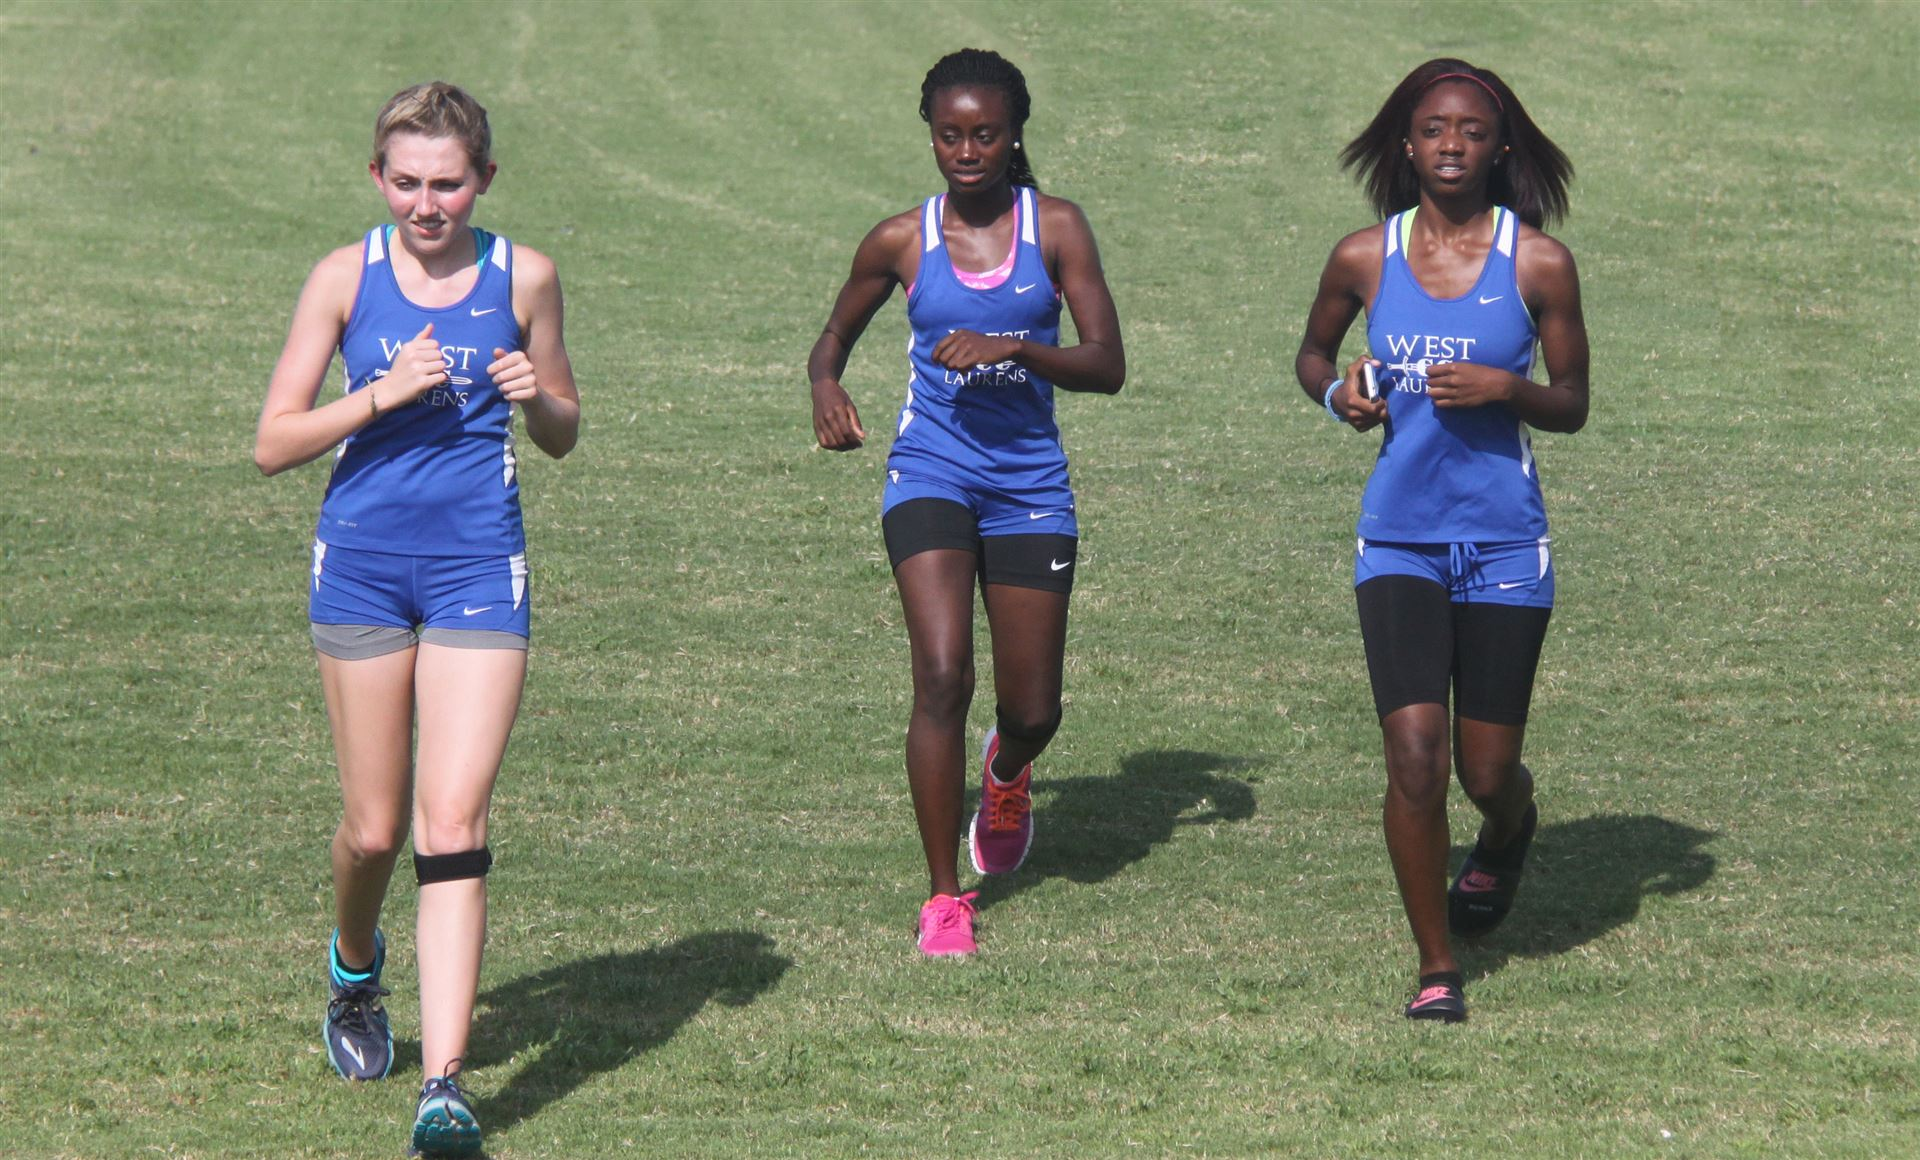 WLHS crosscountry